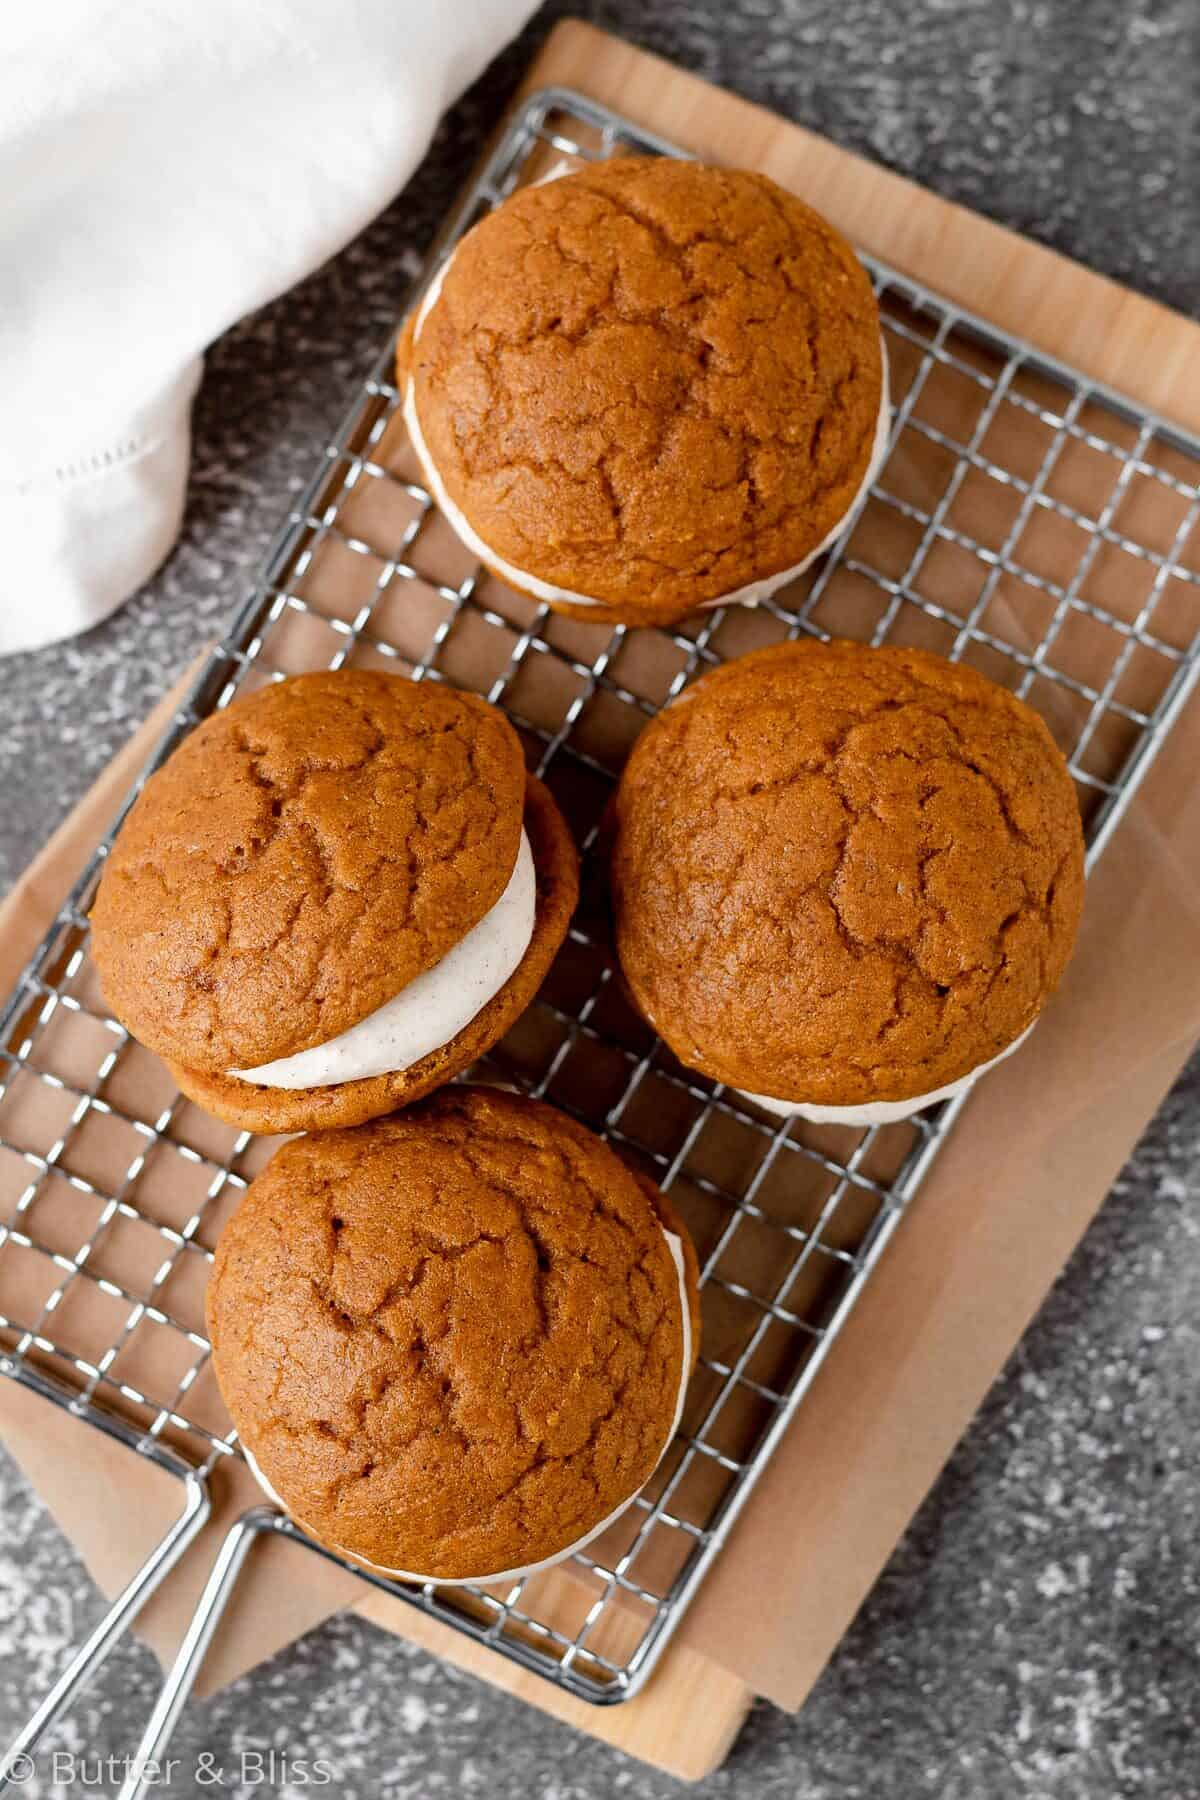 Pumpkin whoopie pies with cream cheese filling arranged on a wire rack